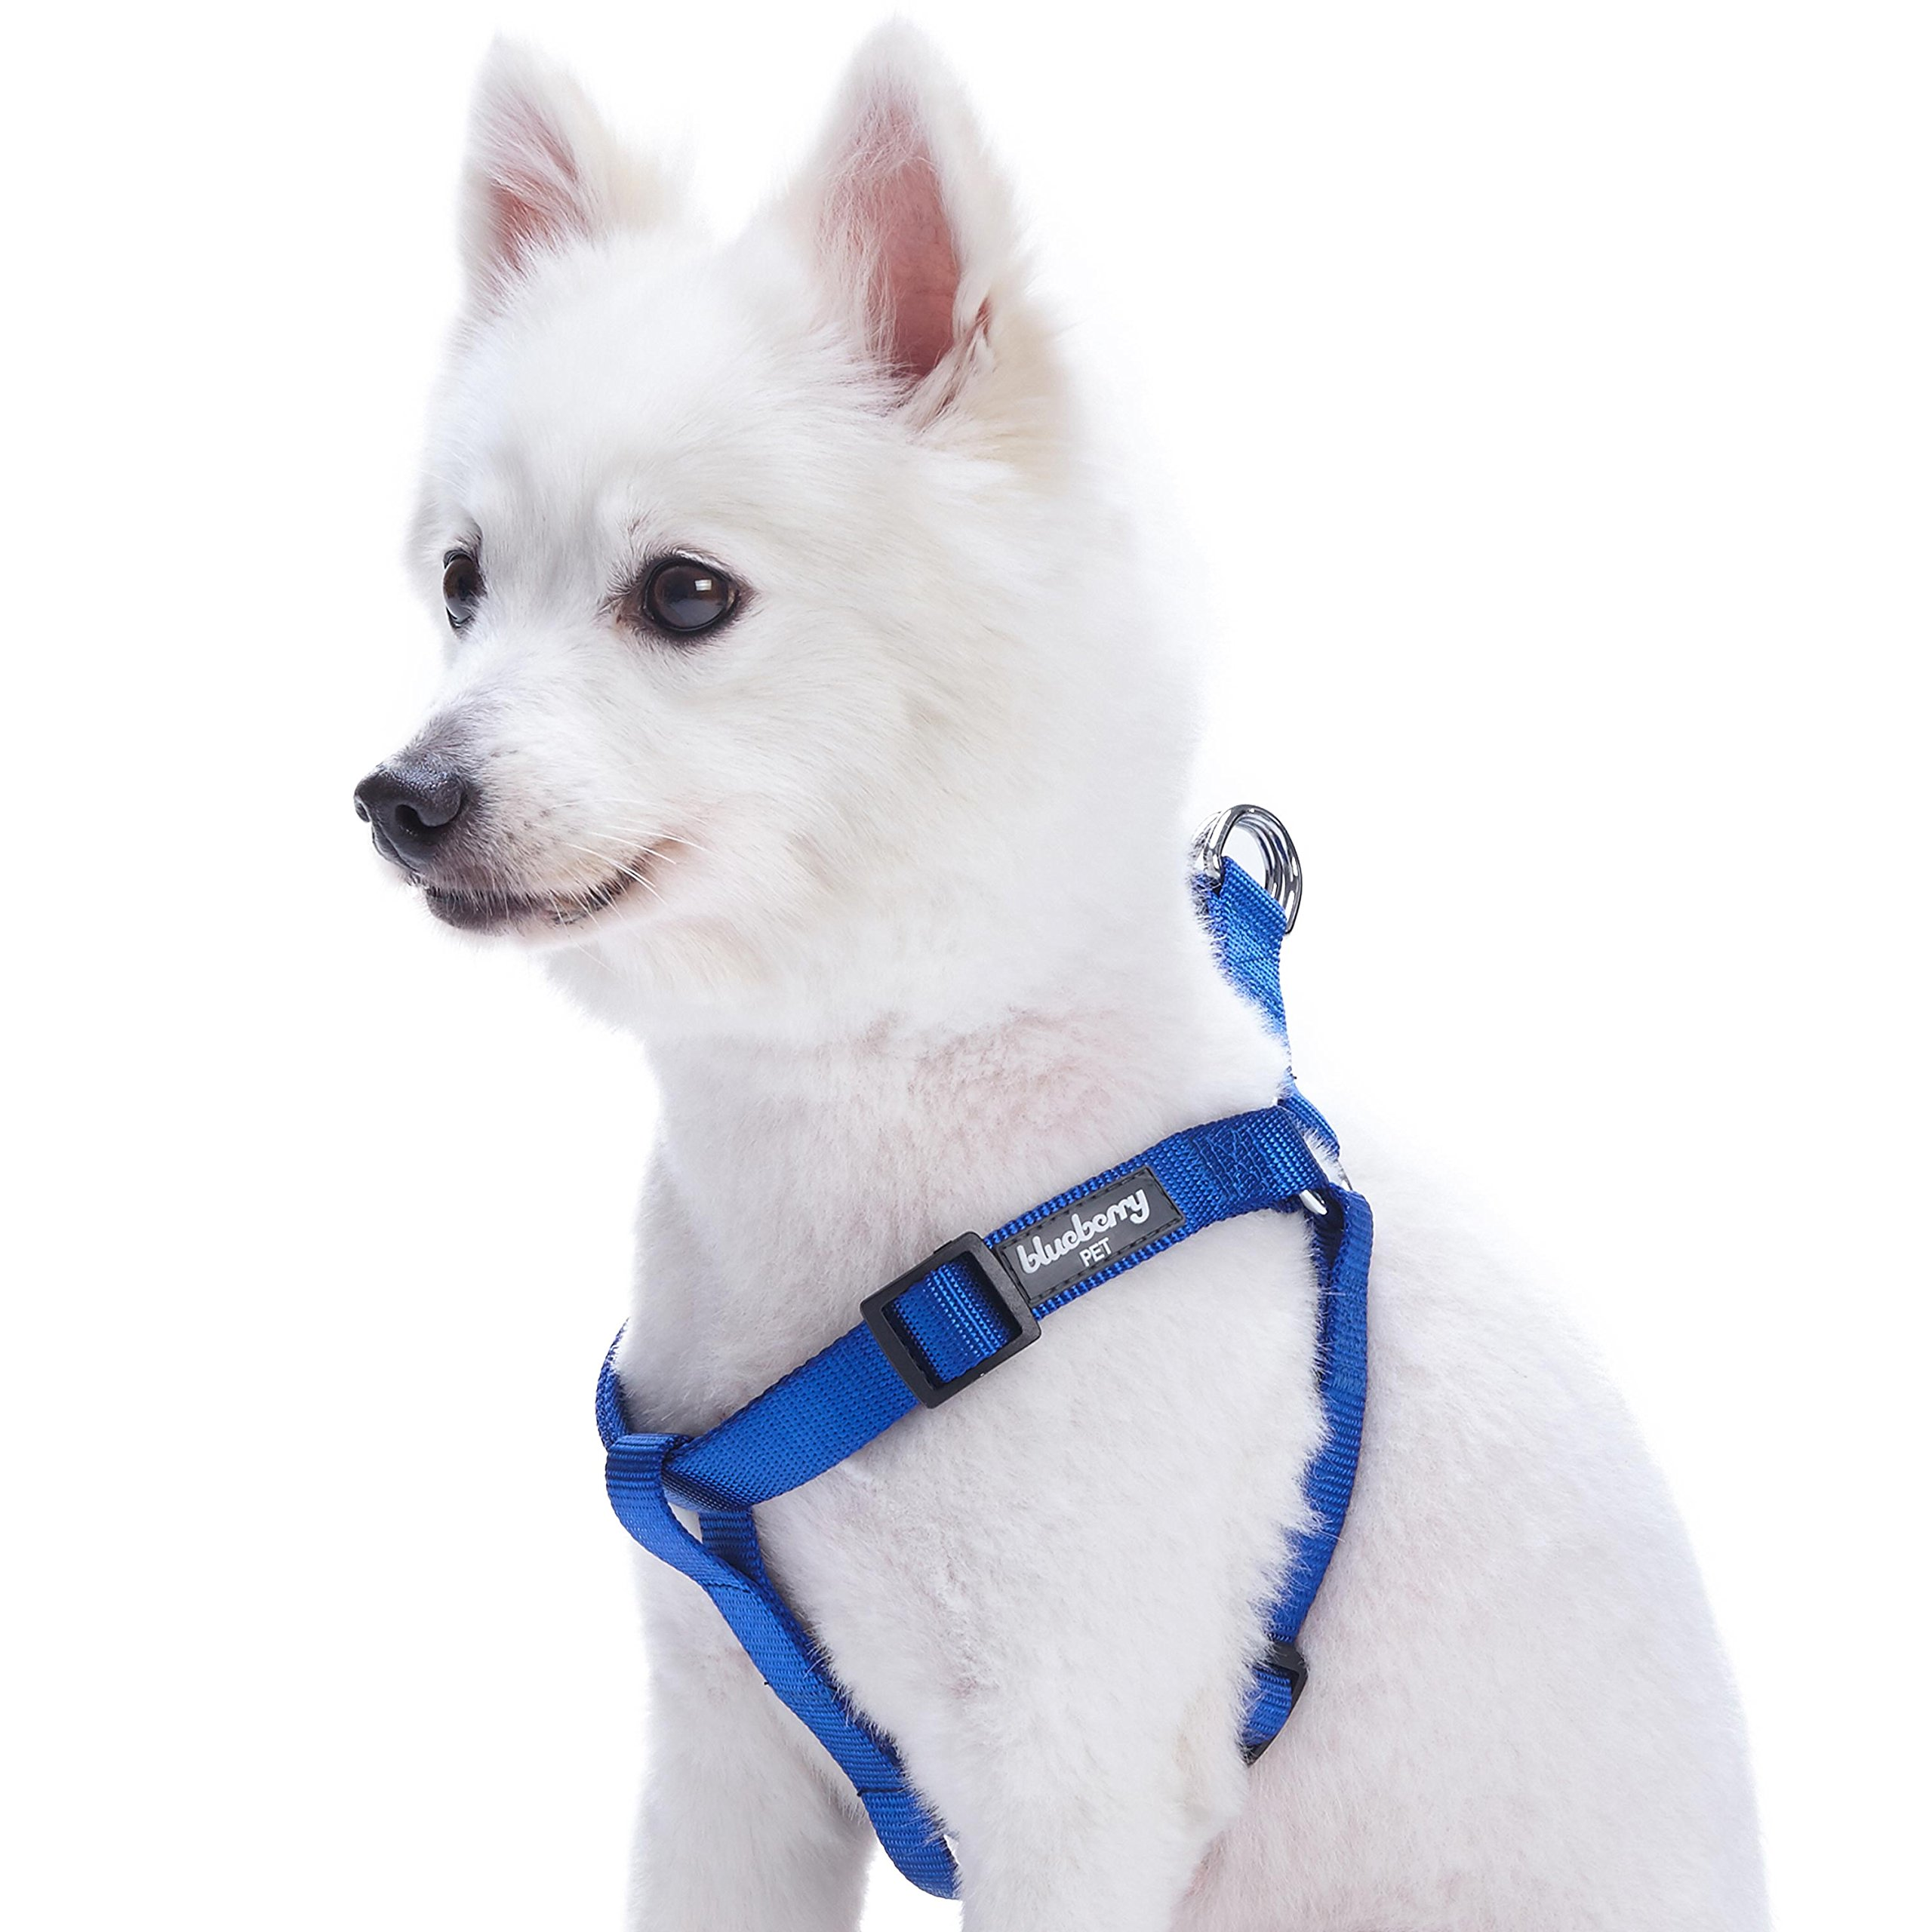 Blueberry Pet 19 Colors Step-in Classic Dog Harness, Chest Girth 16.5'' - 21.5'', Royal Blue, Small, Adjustable Harnesses for Dogs